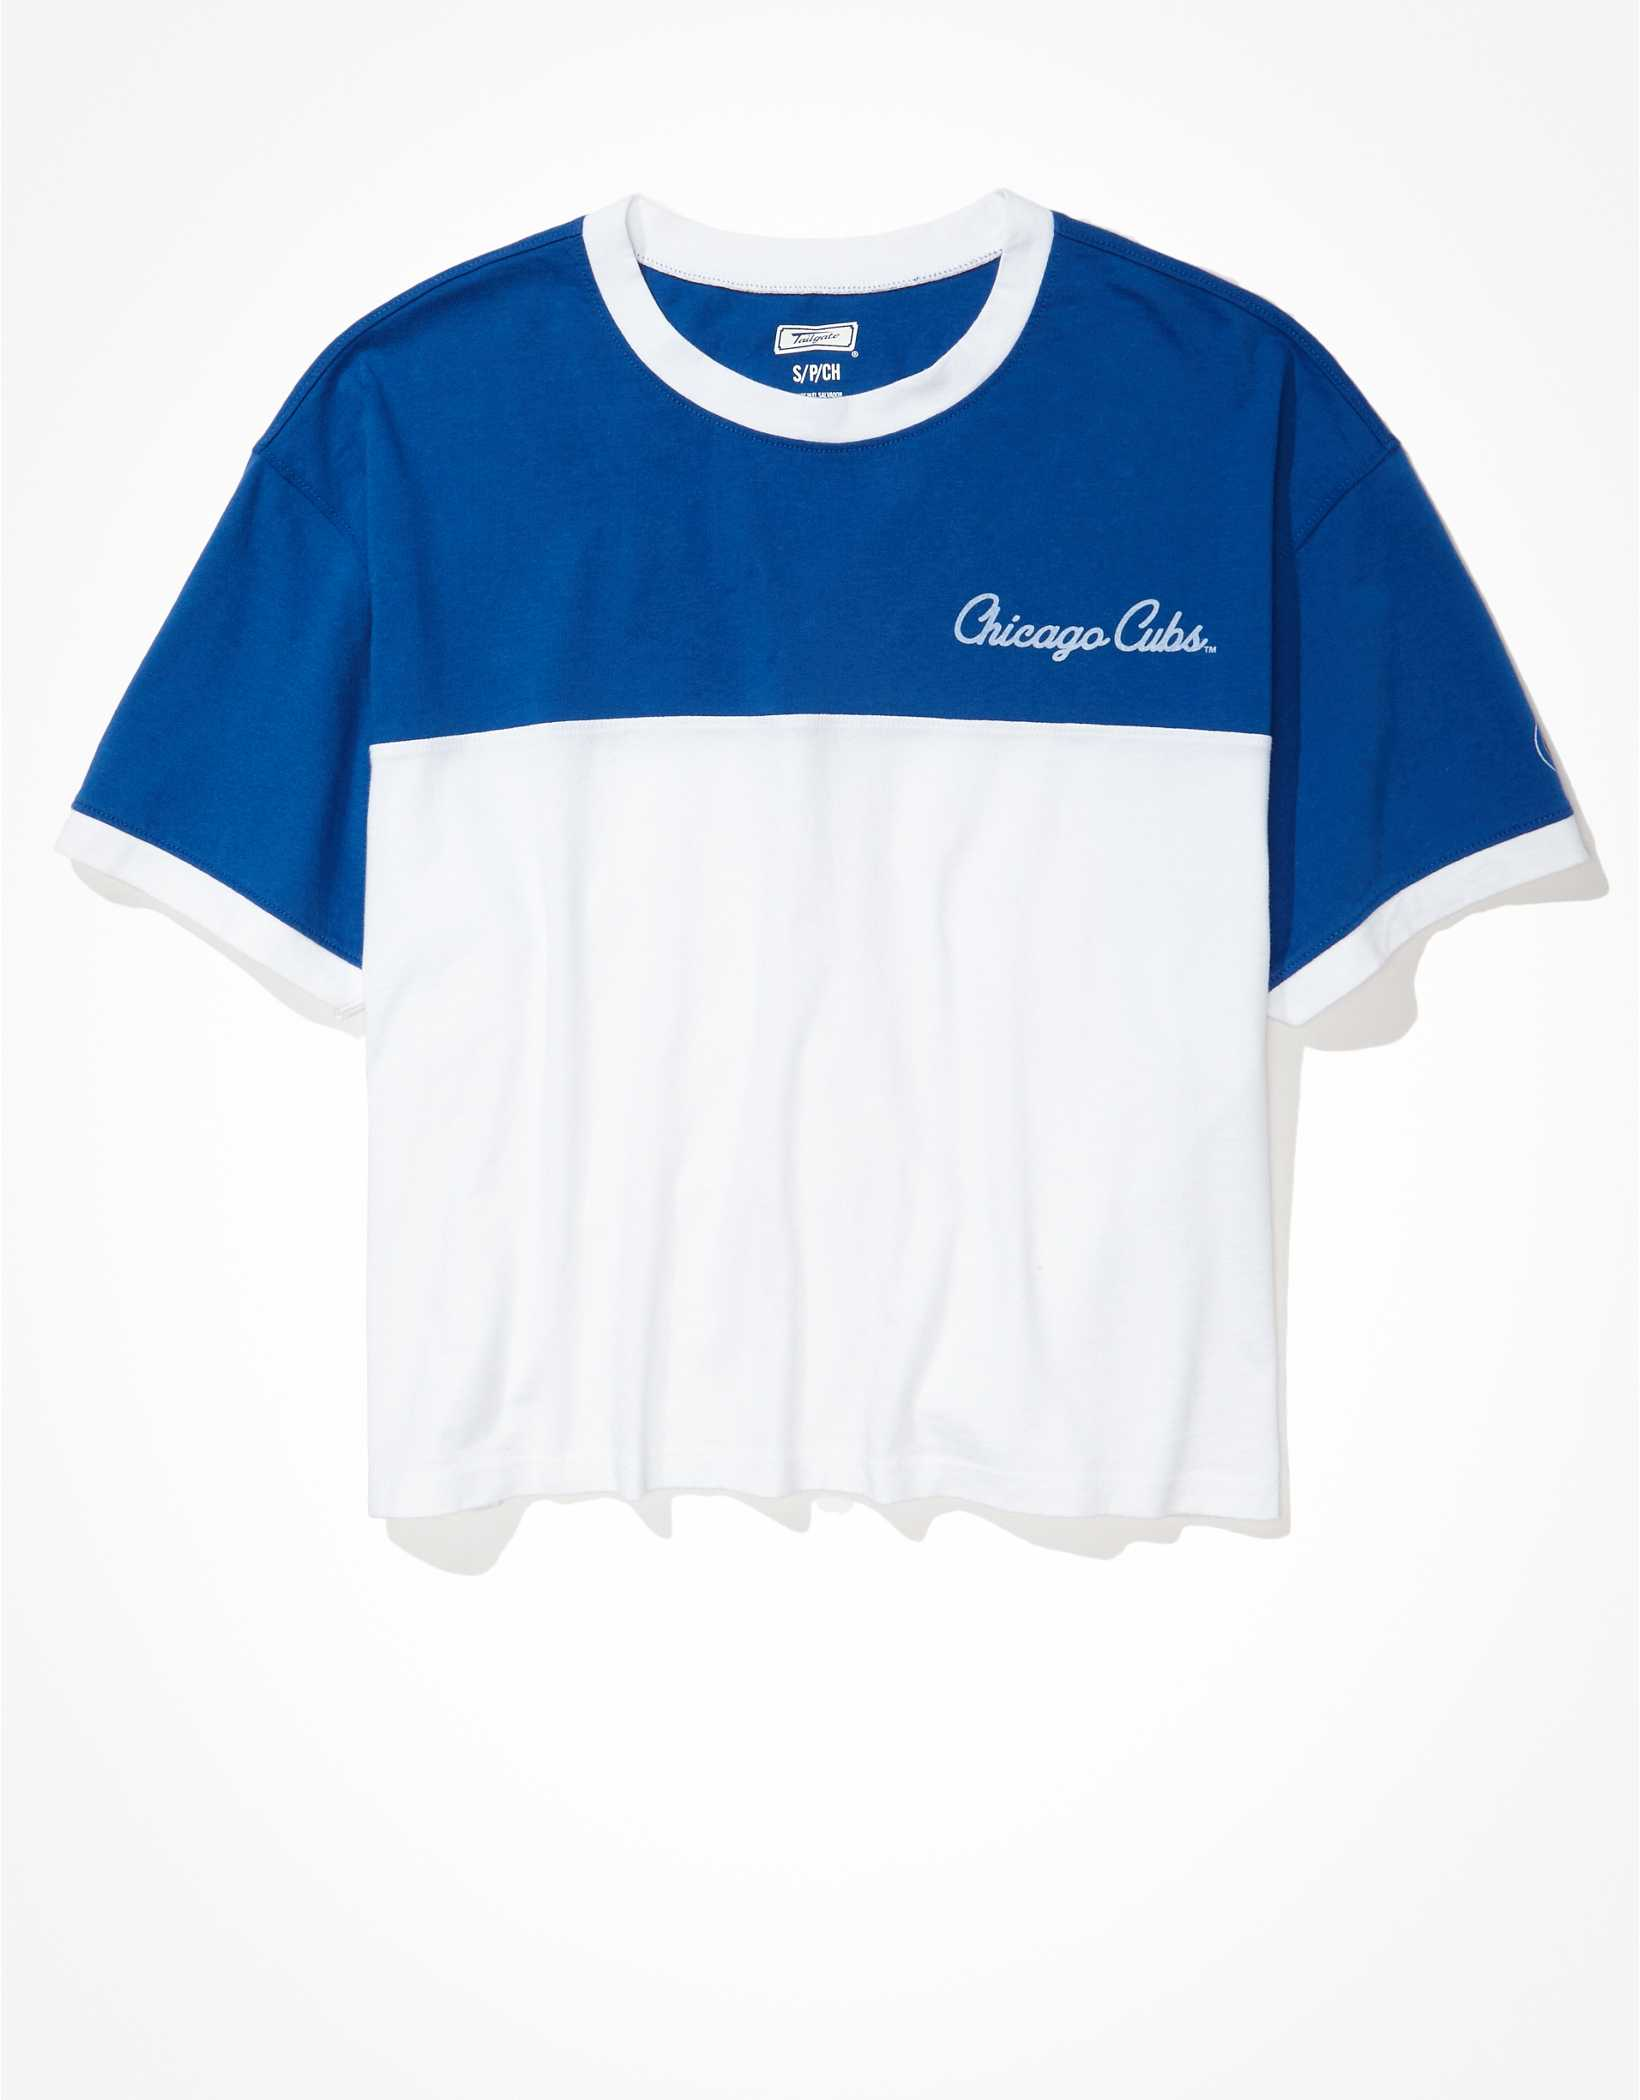 Tailgate Women's Chicago Cubs Cropped Colorblock T-Shirt